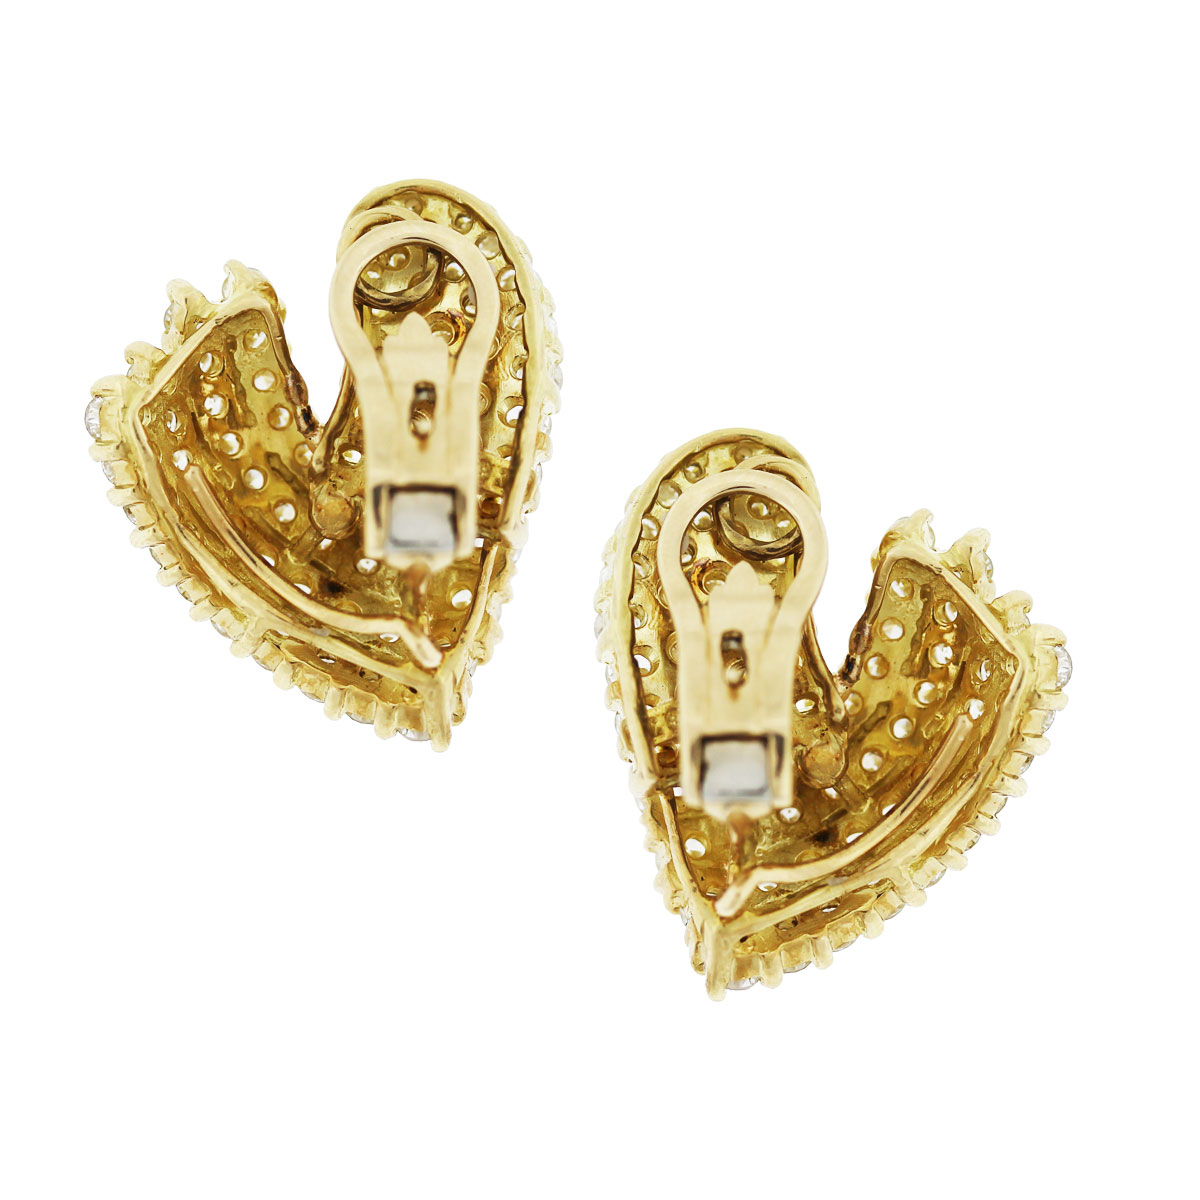 10 Carat Yellow Gold Earrings Ideas